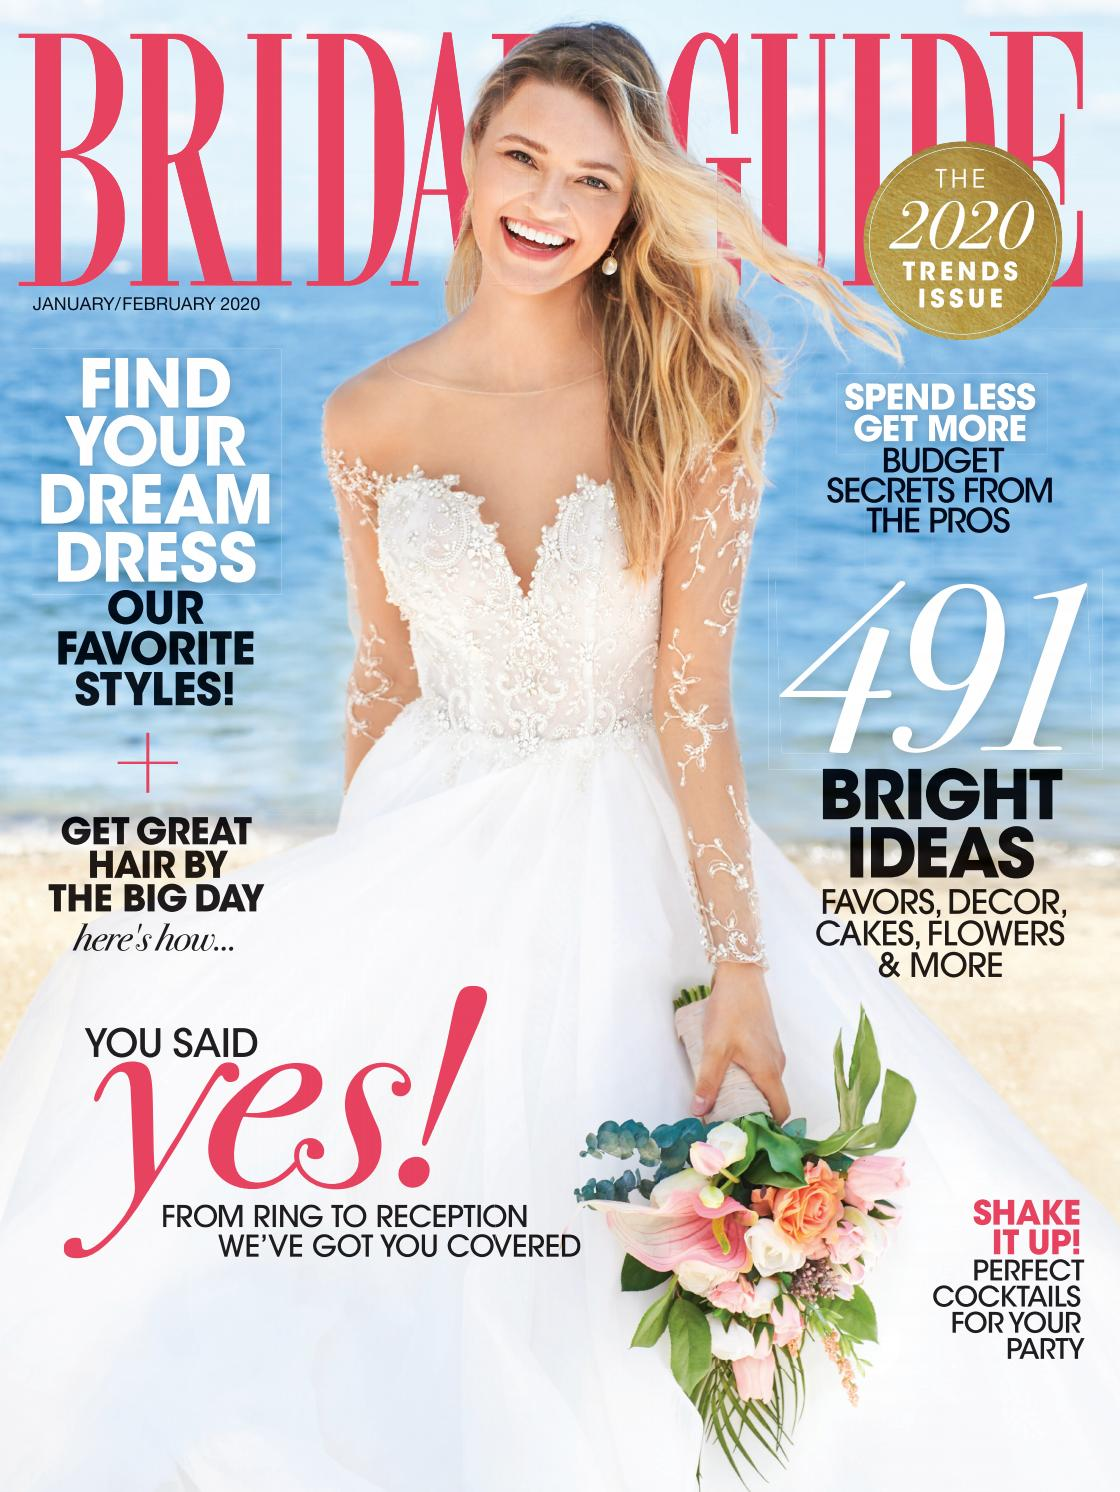 Bridal Guide January February 2020 By Bridal Guide Magazine Issuu